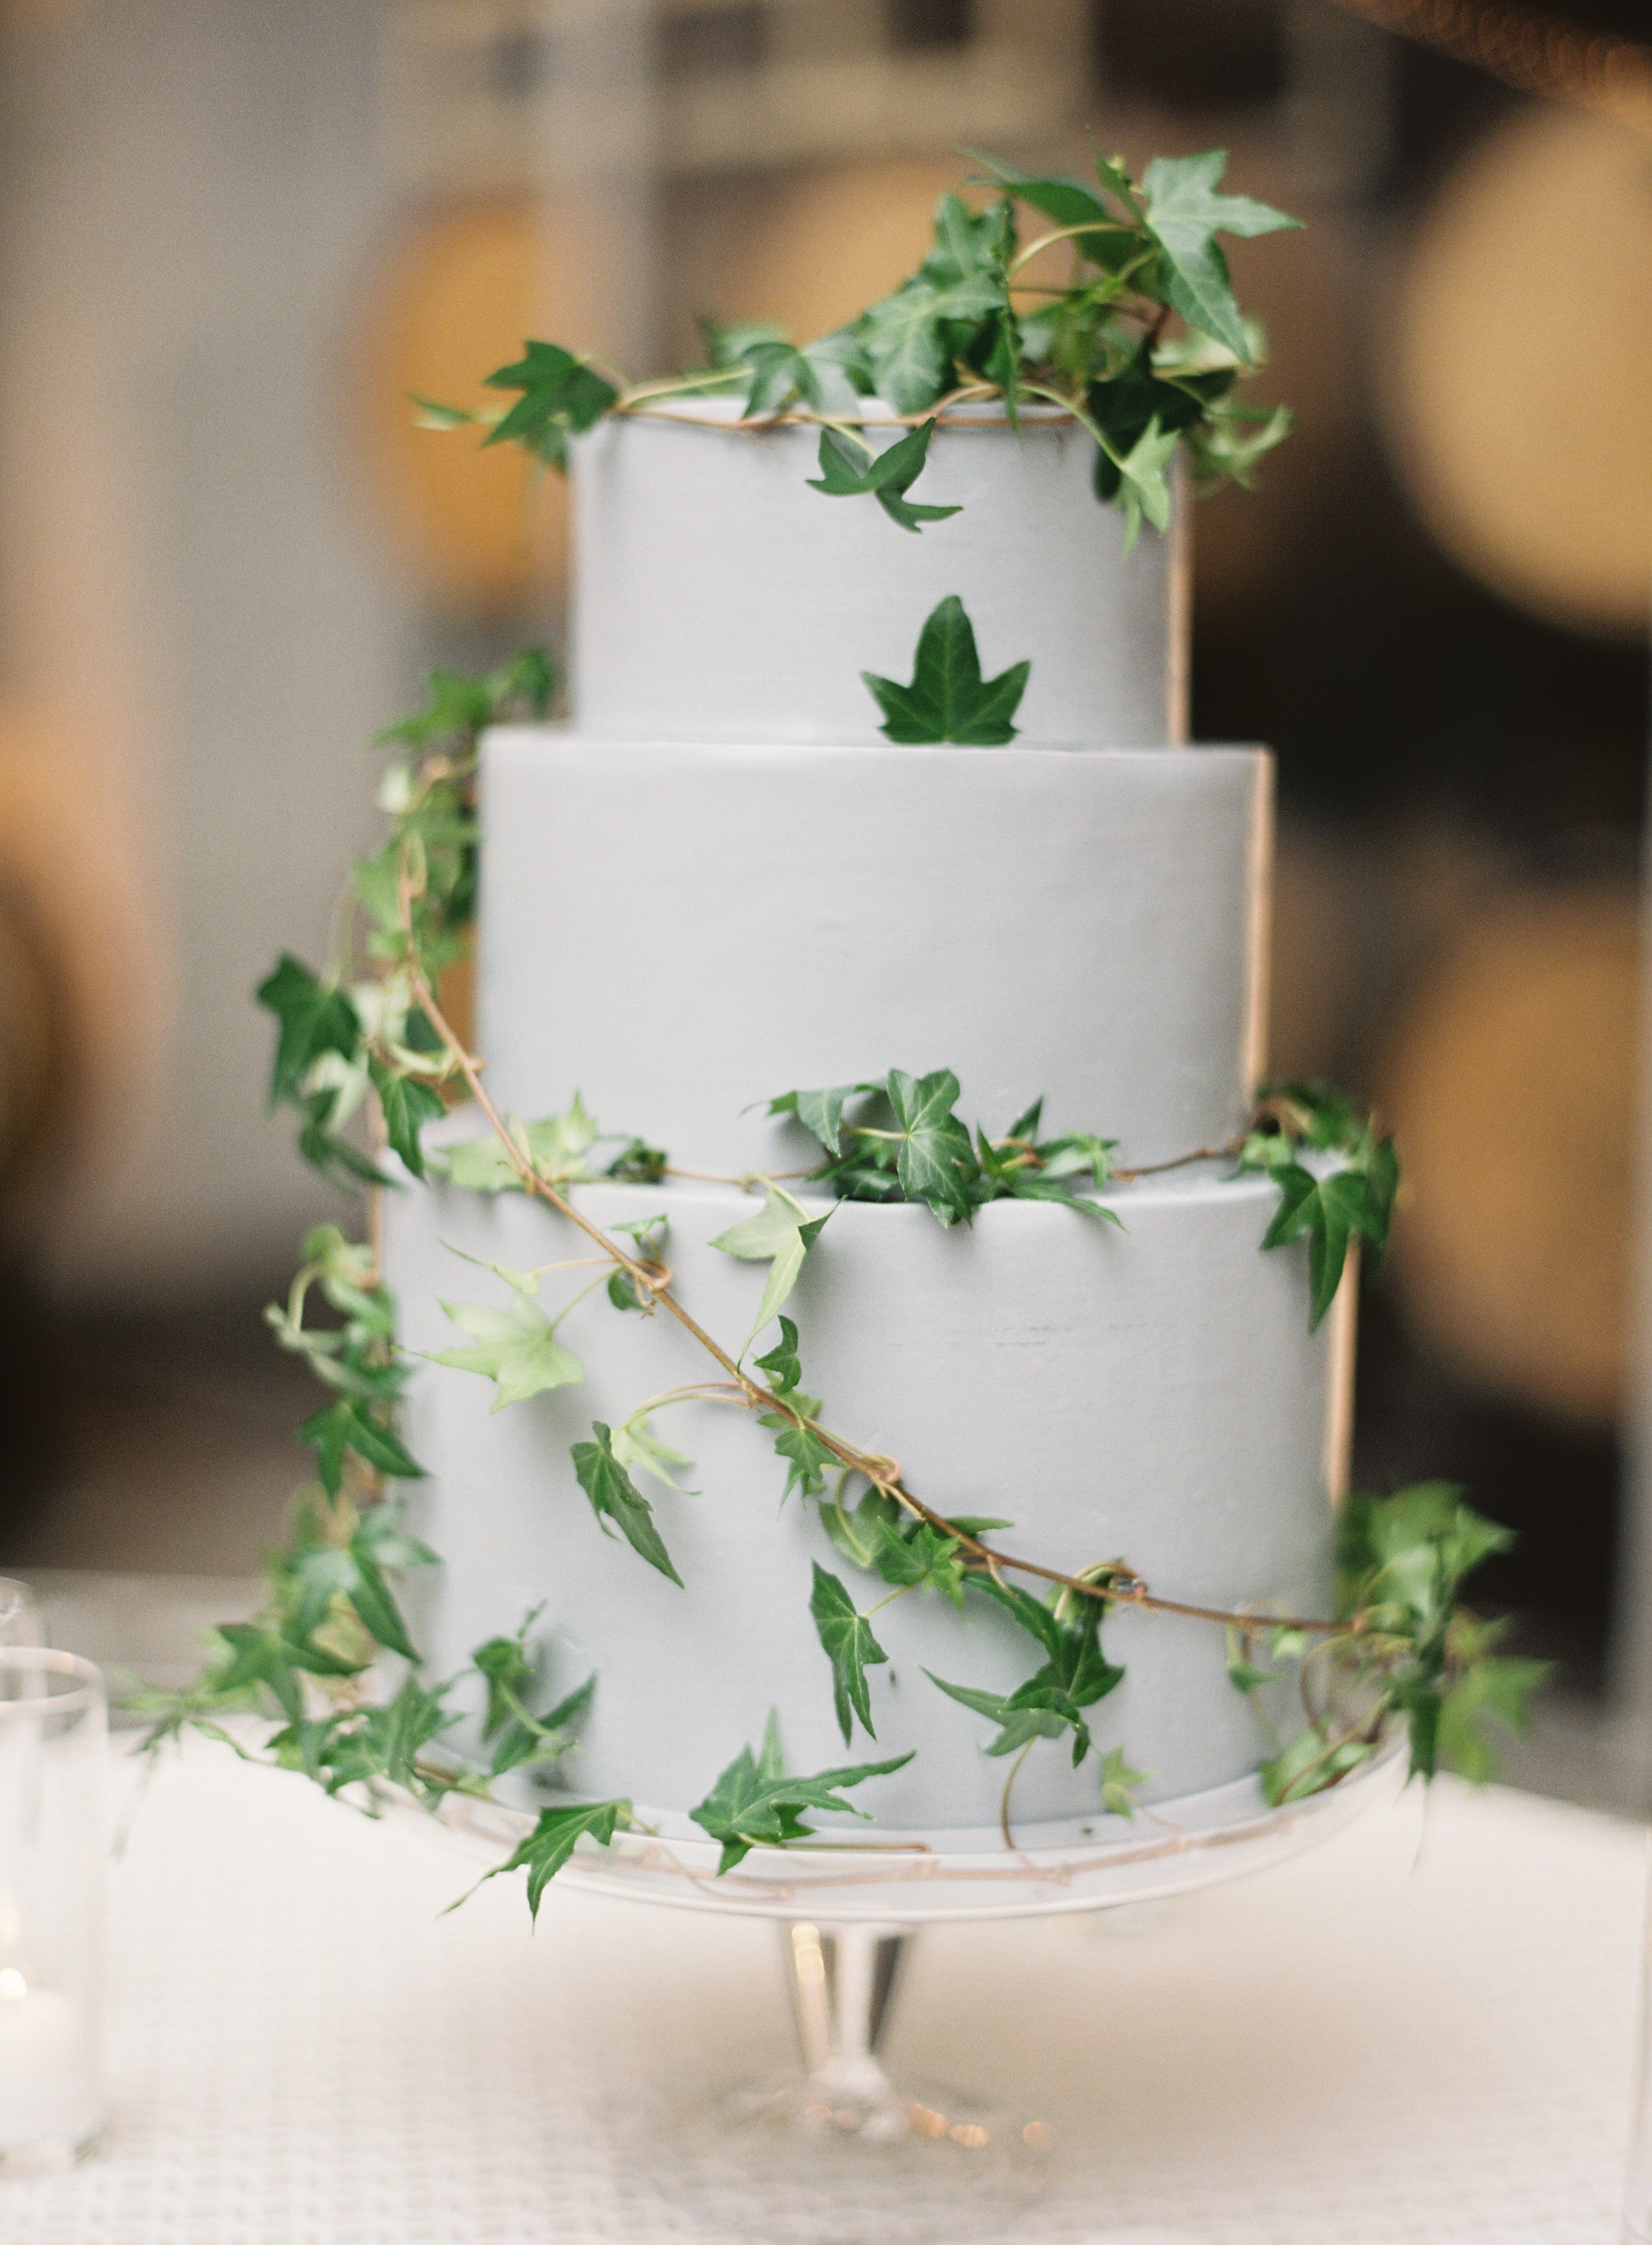 Garden-Inspired Wedding Cake With Ivy